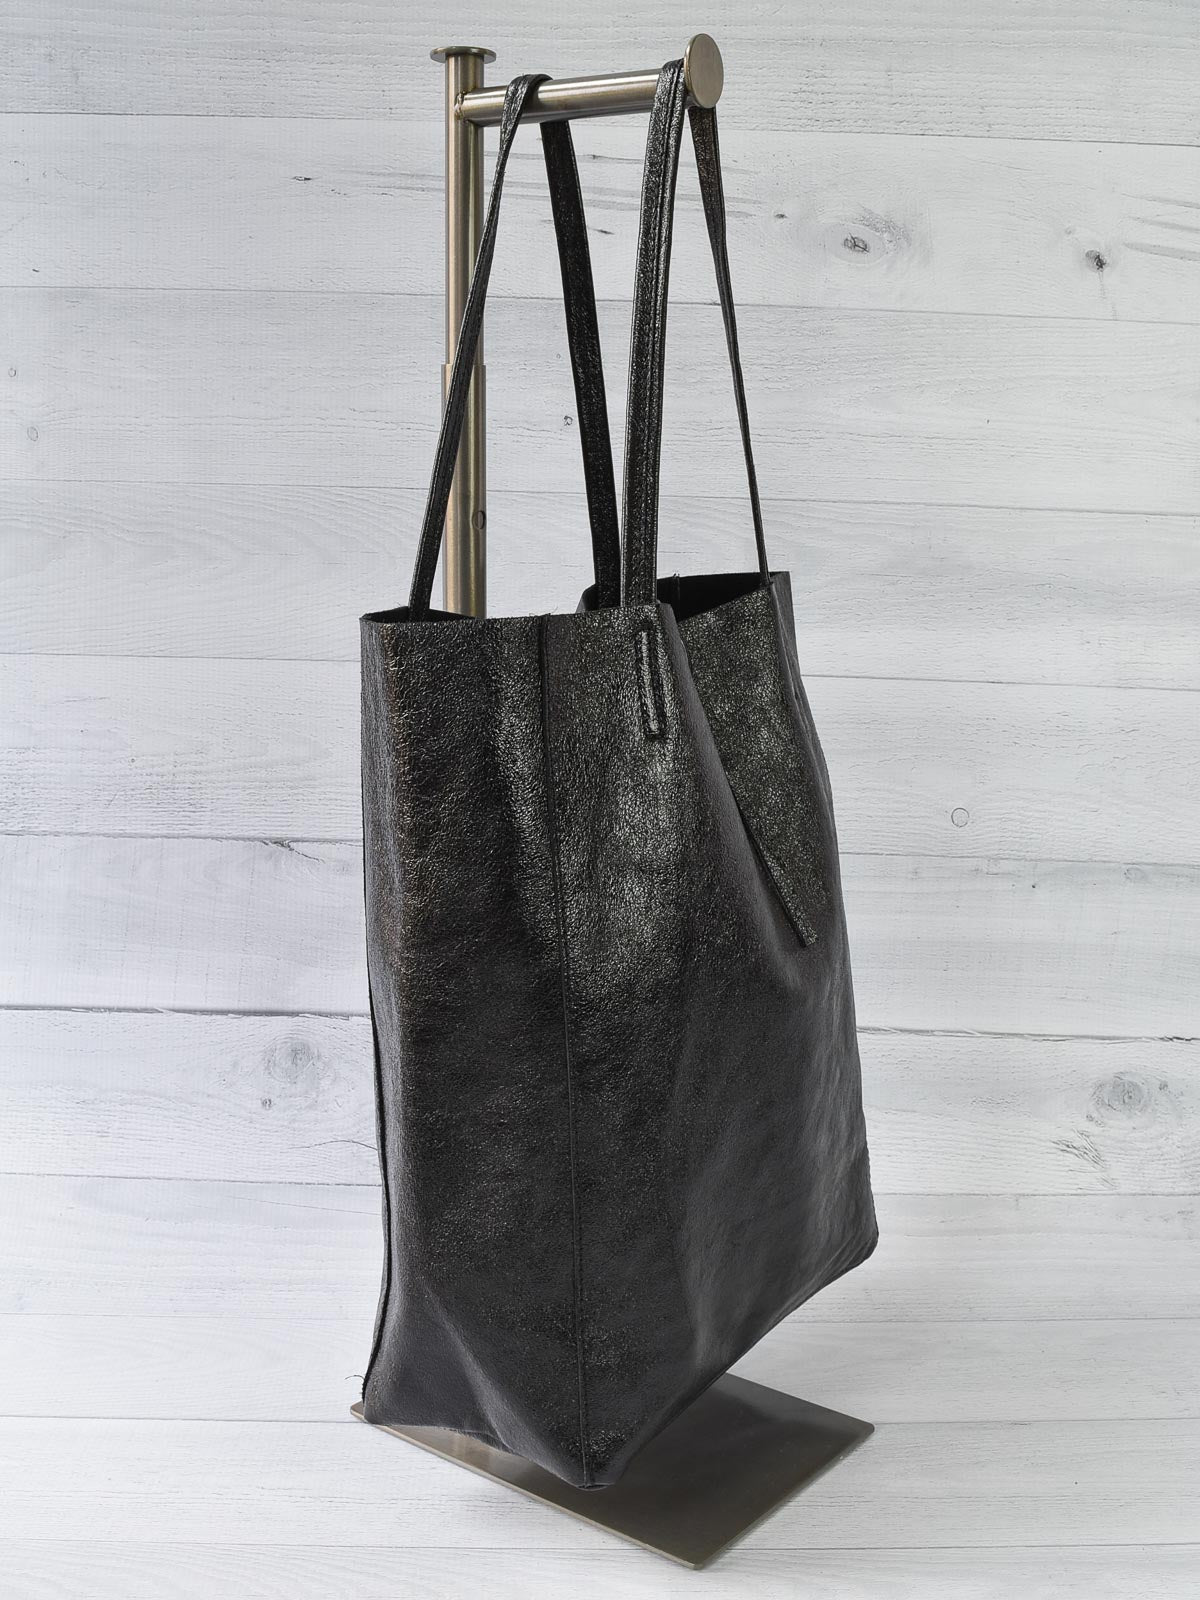 Jijou Capri Metallic Leather Tote Bag, Black - Statement Boutique